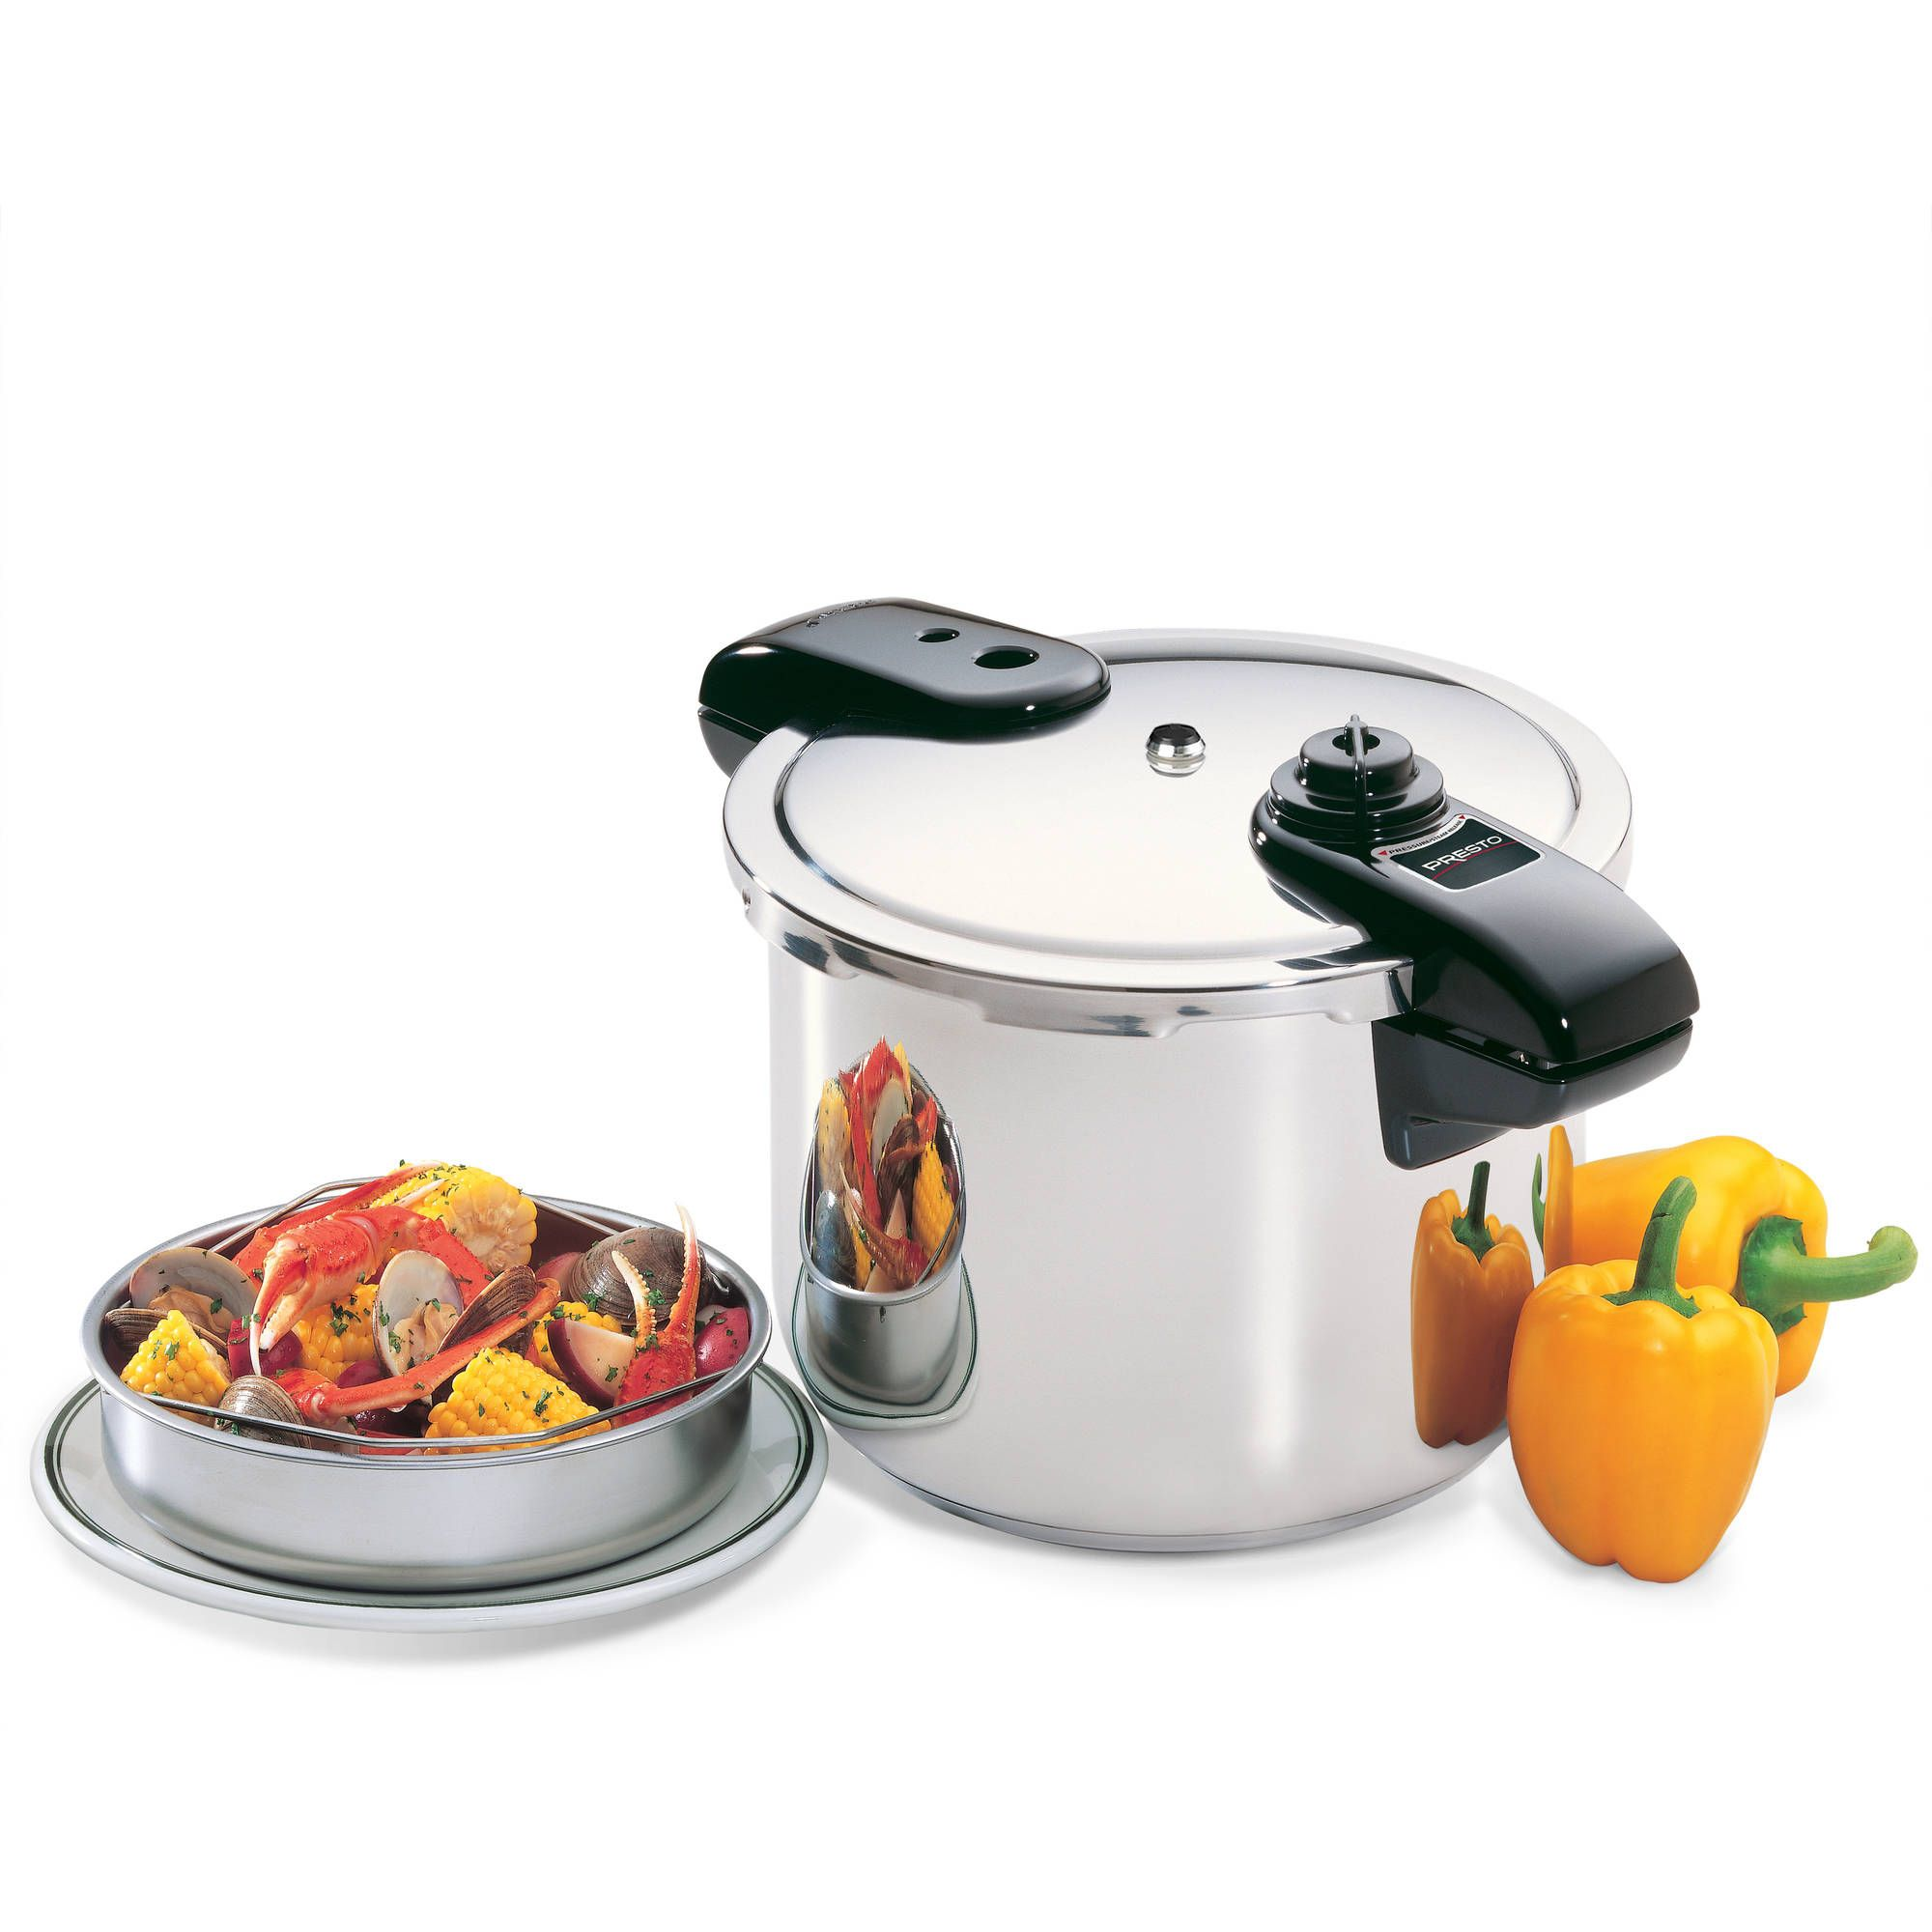 Buy fagor duo 8 quart pressure cooker from bed bath amp beyond - Goes Here Presto 8 Quart Stainless Steel Pressure Cooker Description Presto Pressure Cooker Stainless Steel